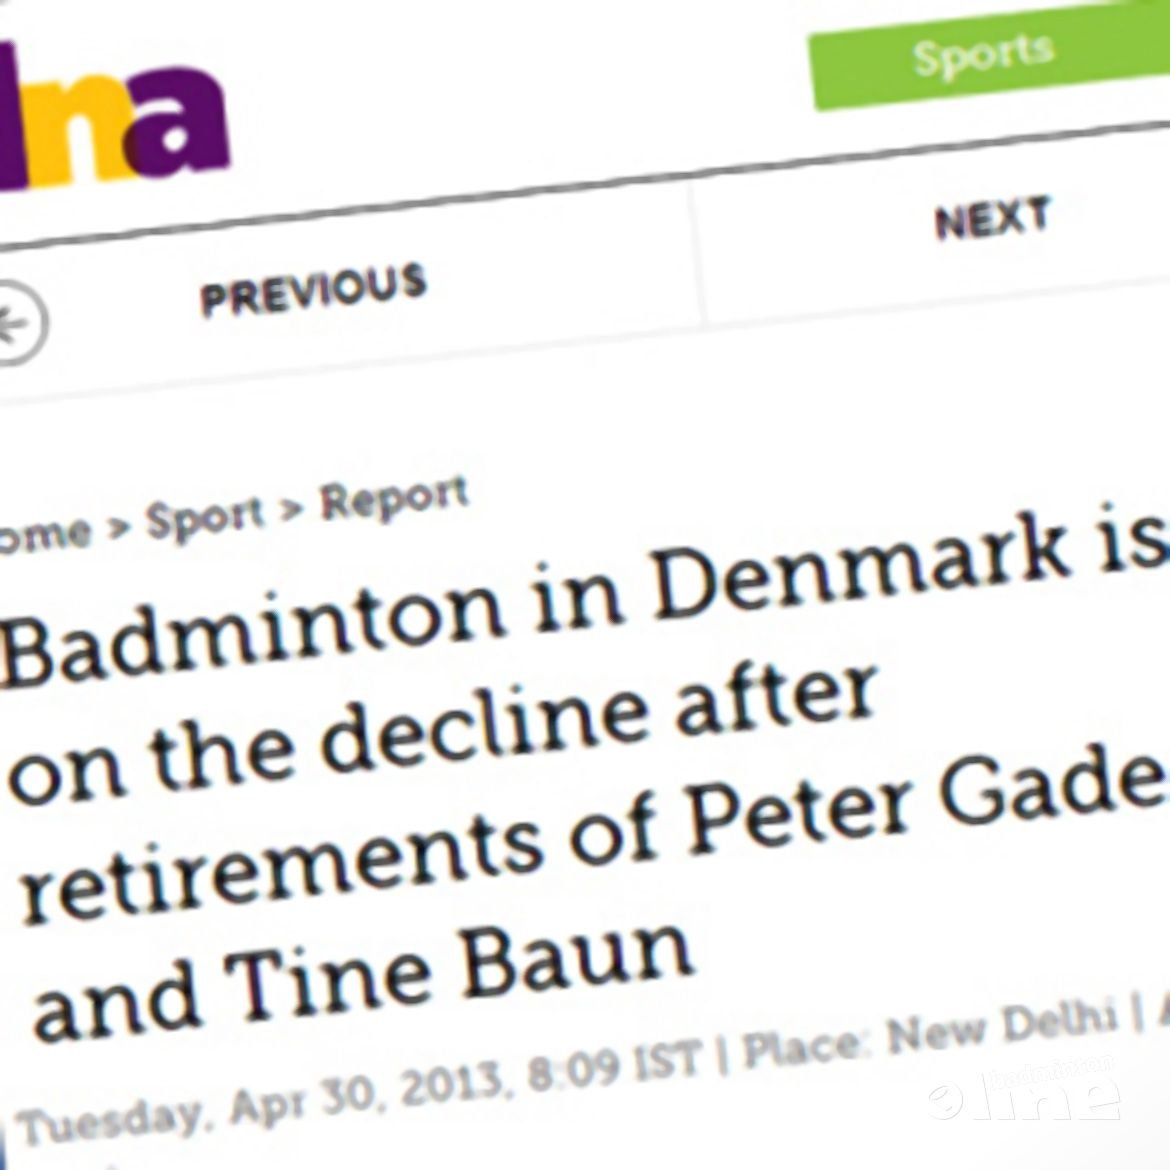 DNA: 'Badminton in Denmark is on the decline after retirements of Peter Gade and Tine Baun'